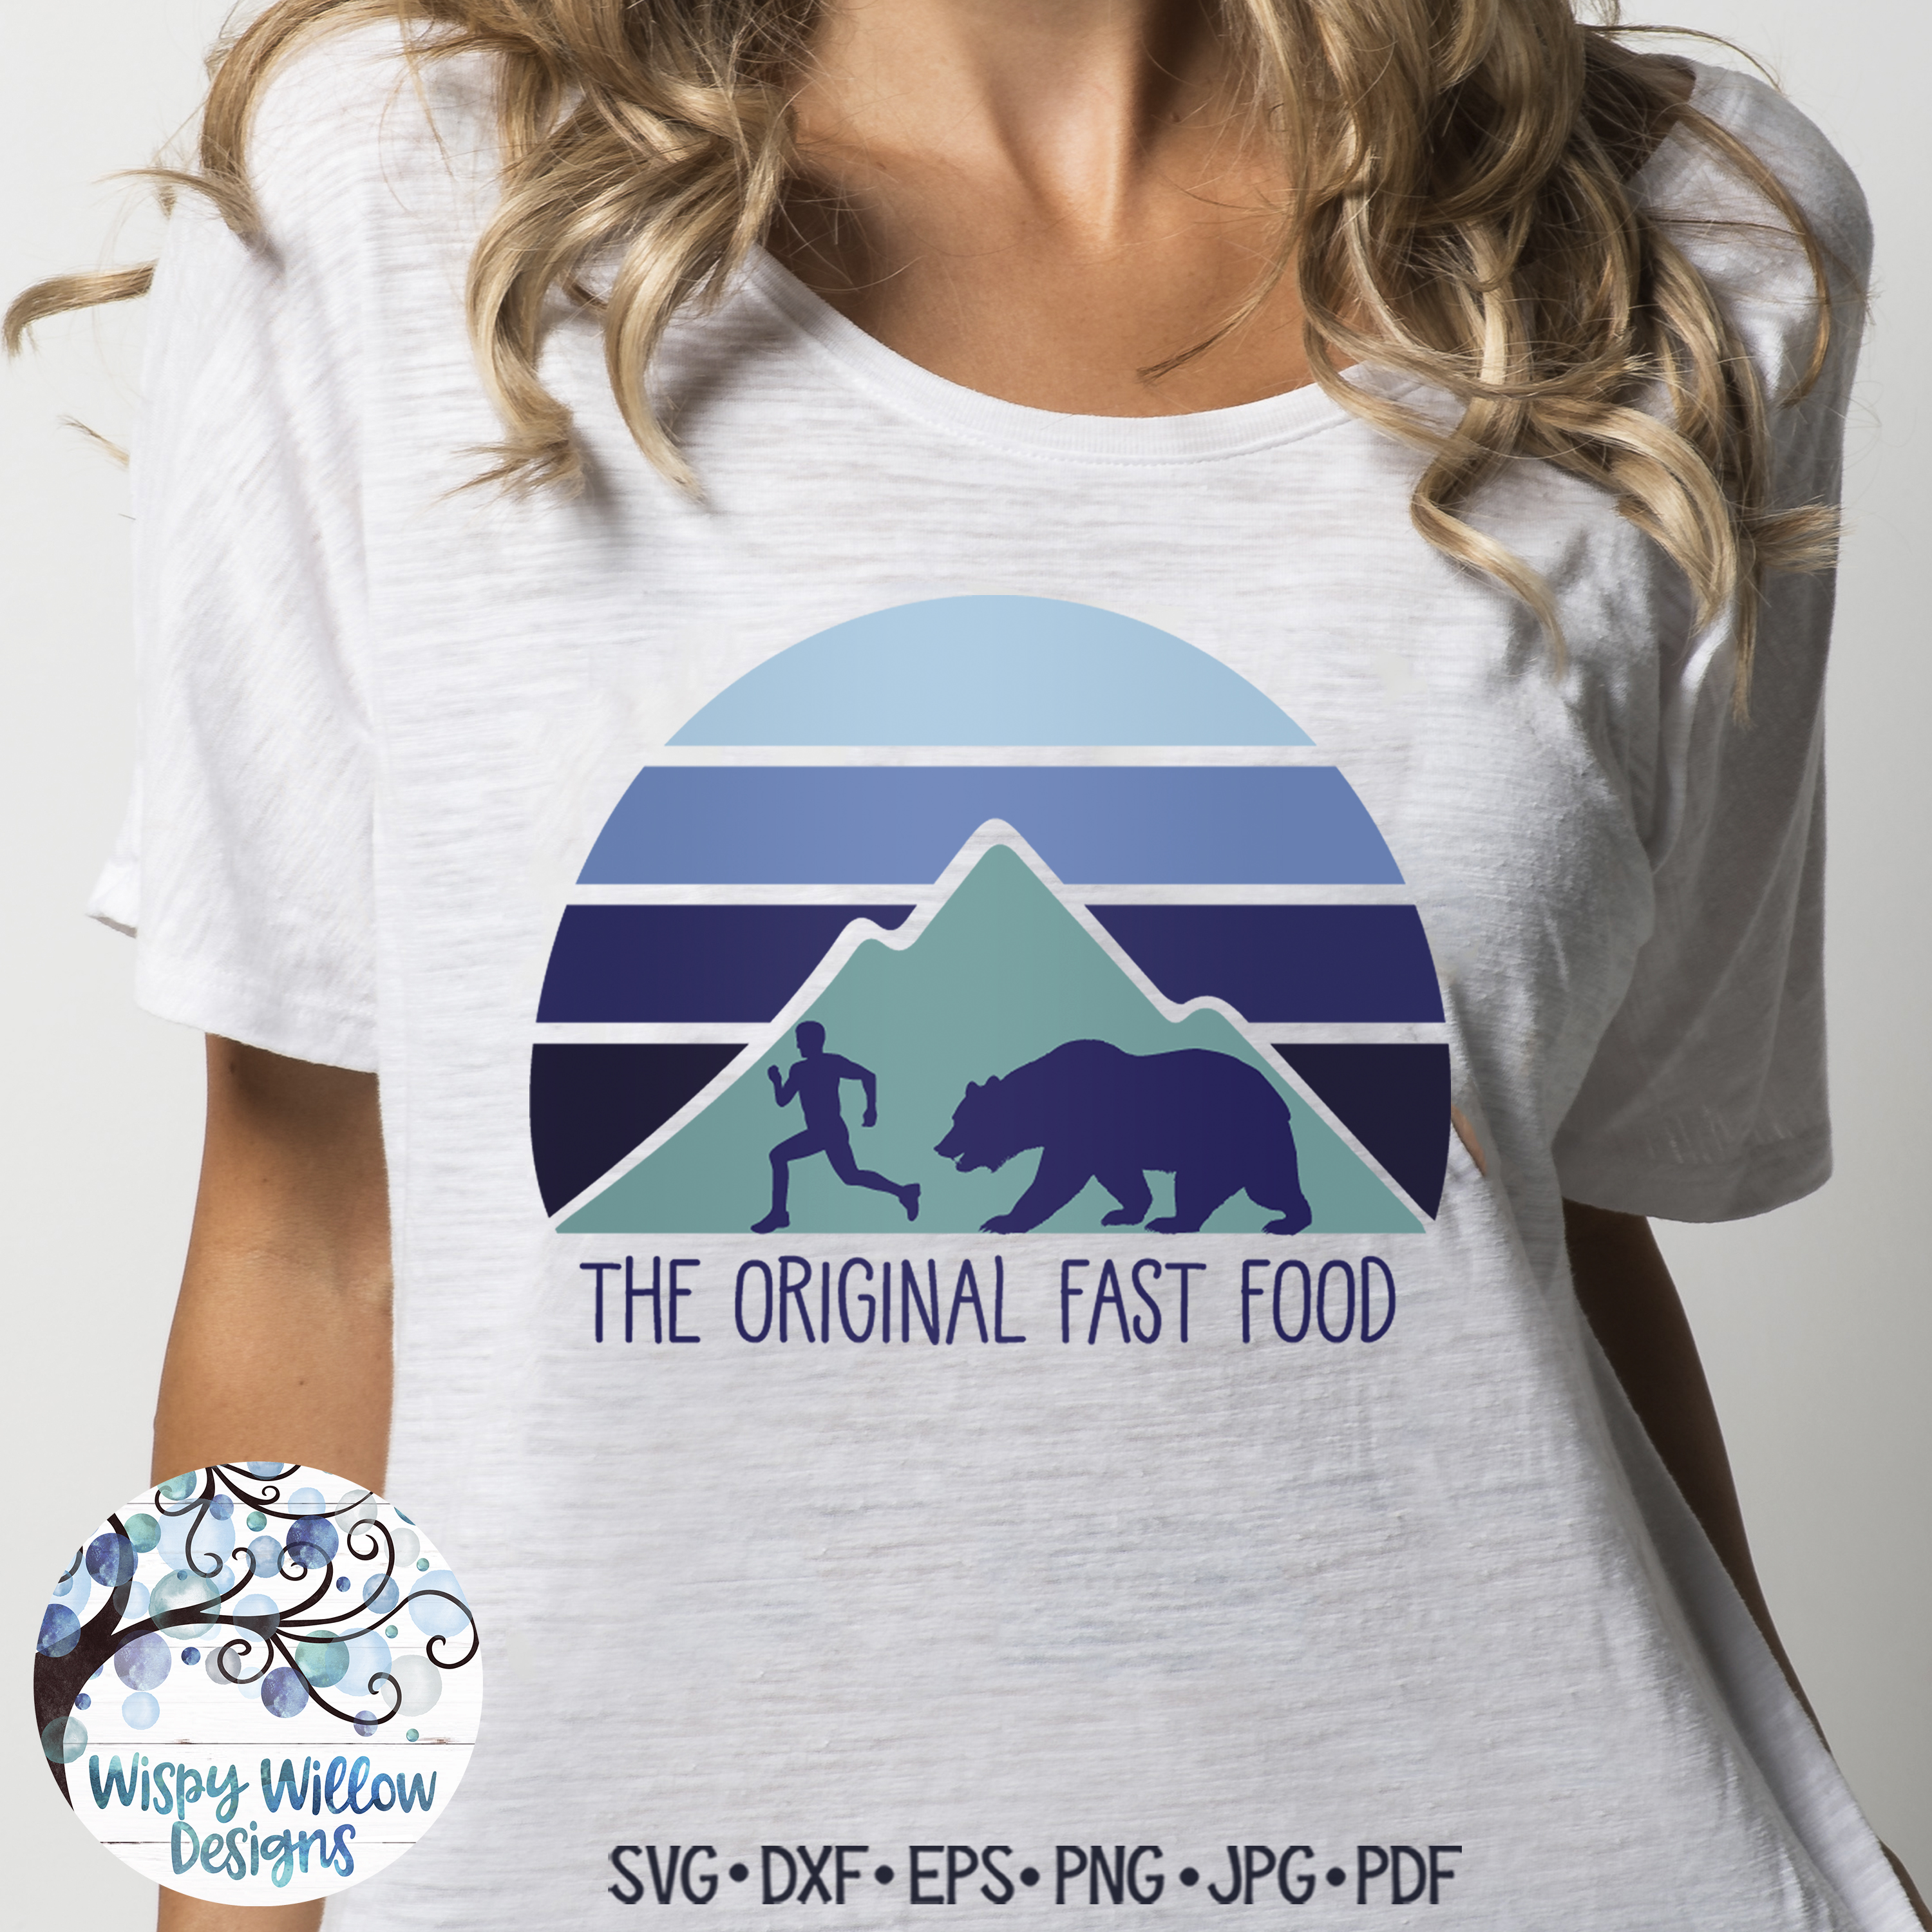 The Original Fast Food SVG   Funny Camping SVG Cut File example image 5